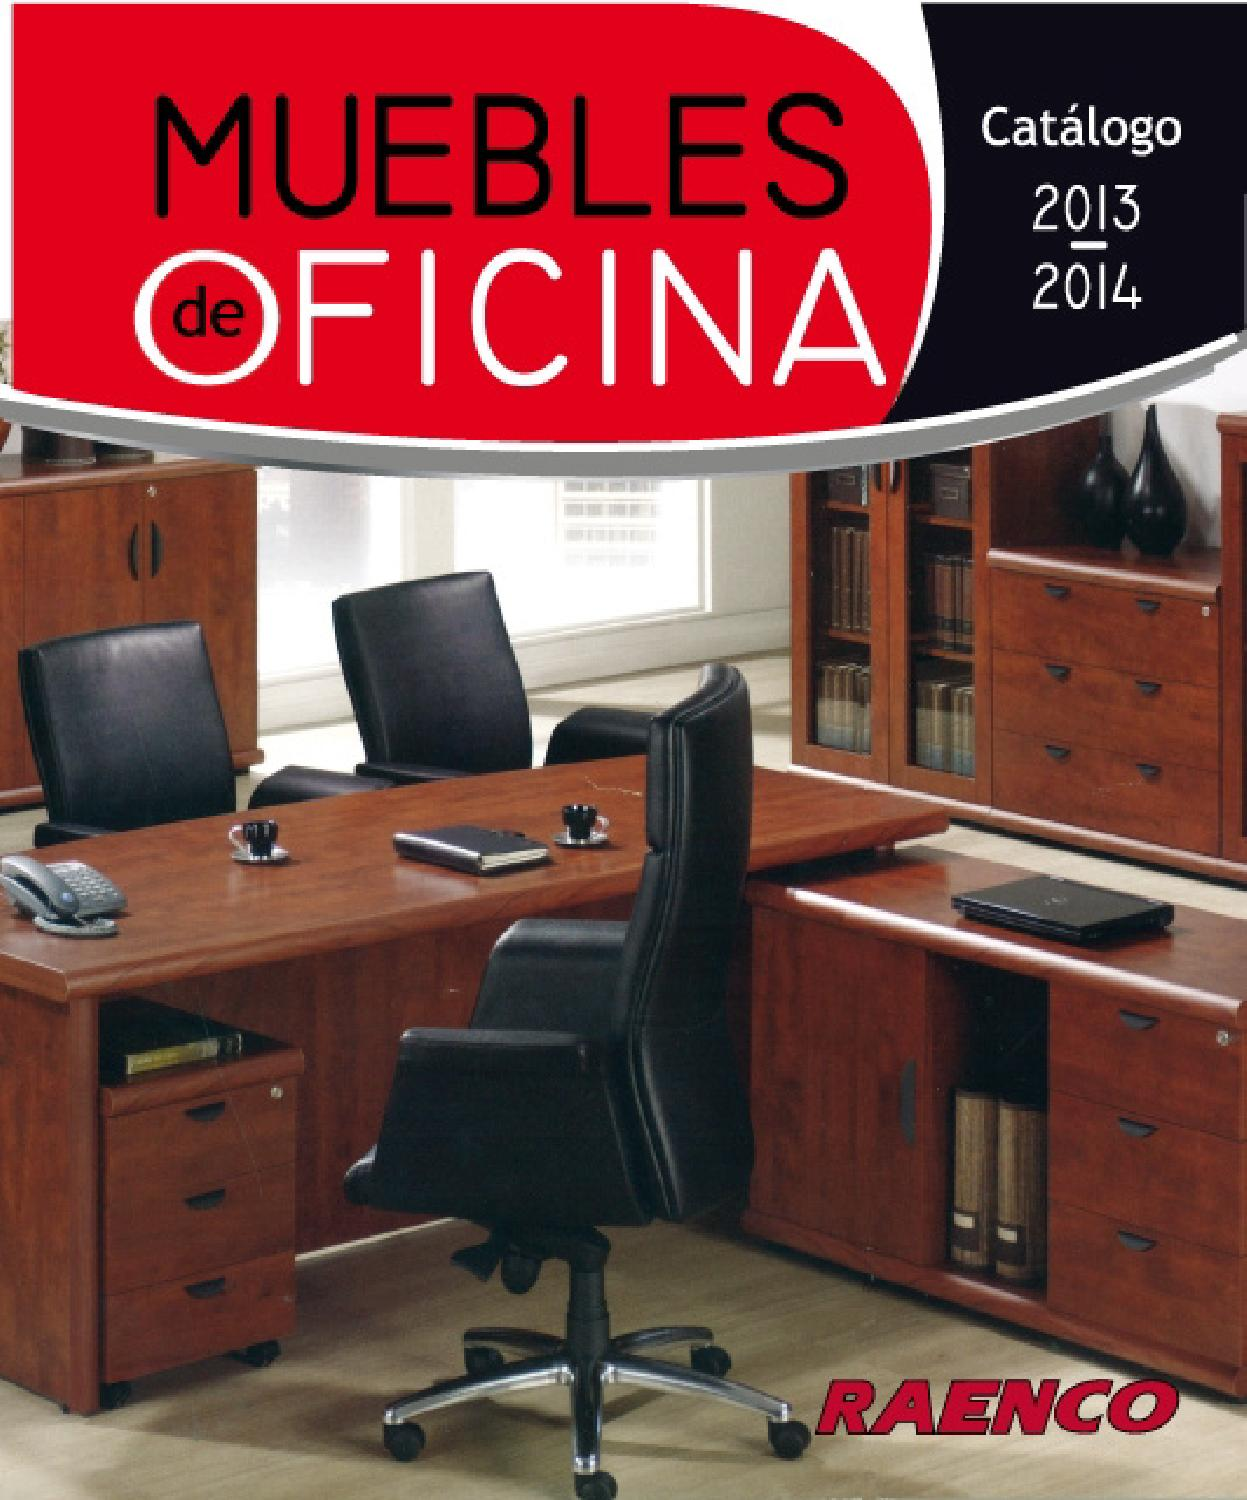 Cat logo raenco oficina by interiores estilo issuu for Muebles sillas oficina